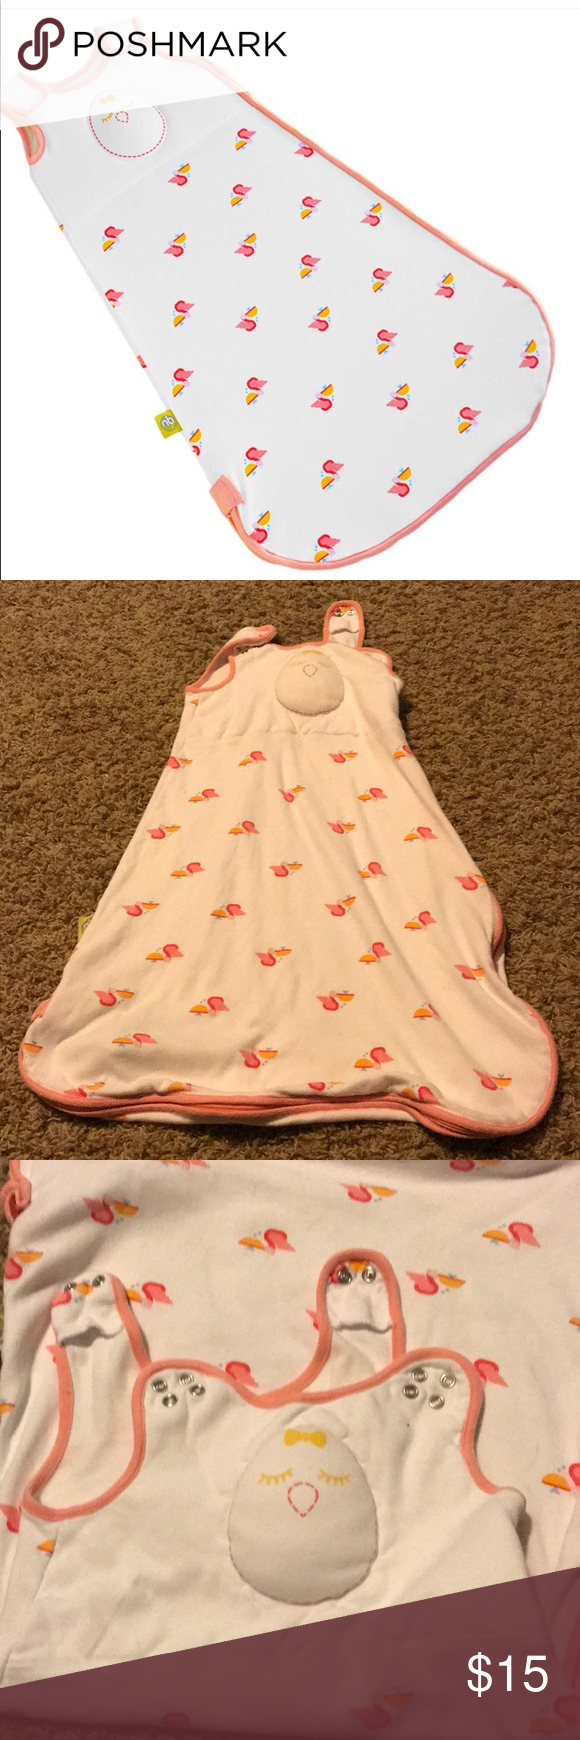 ad50b728e530 Nested Bean Weighted Sleep Sack Cute pelican design! Great condition ...